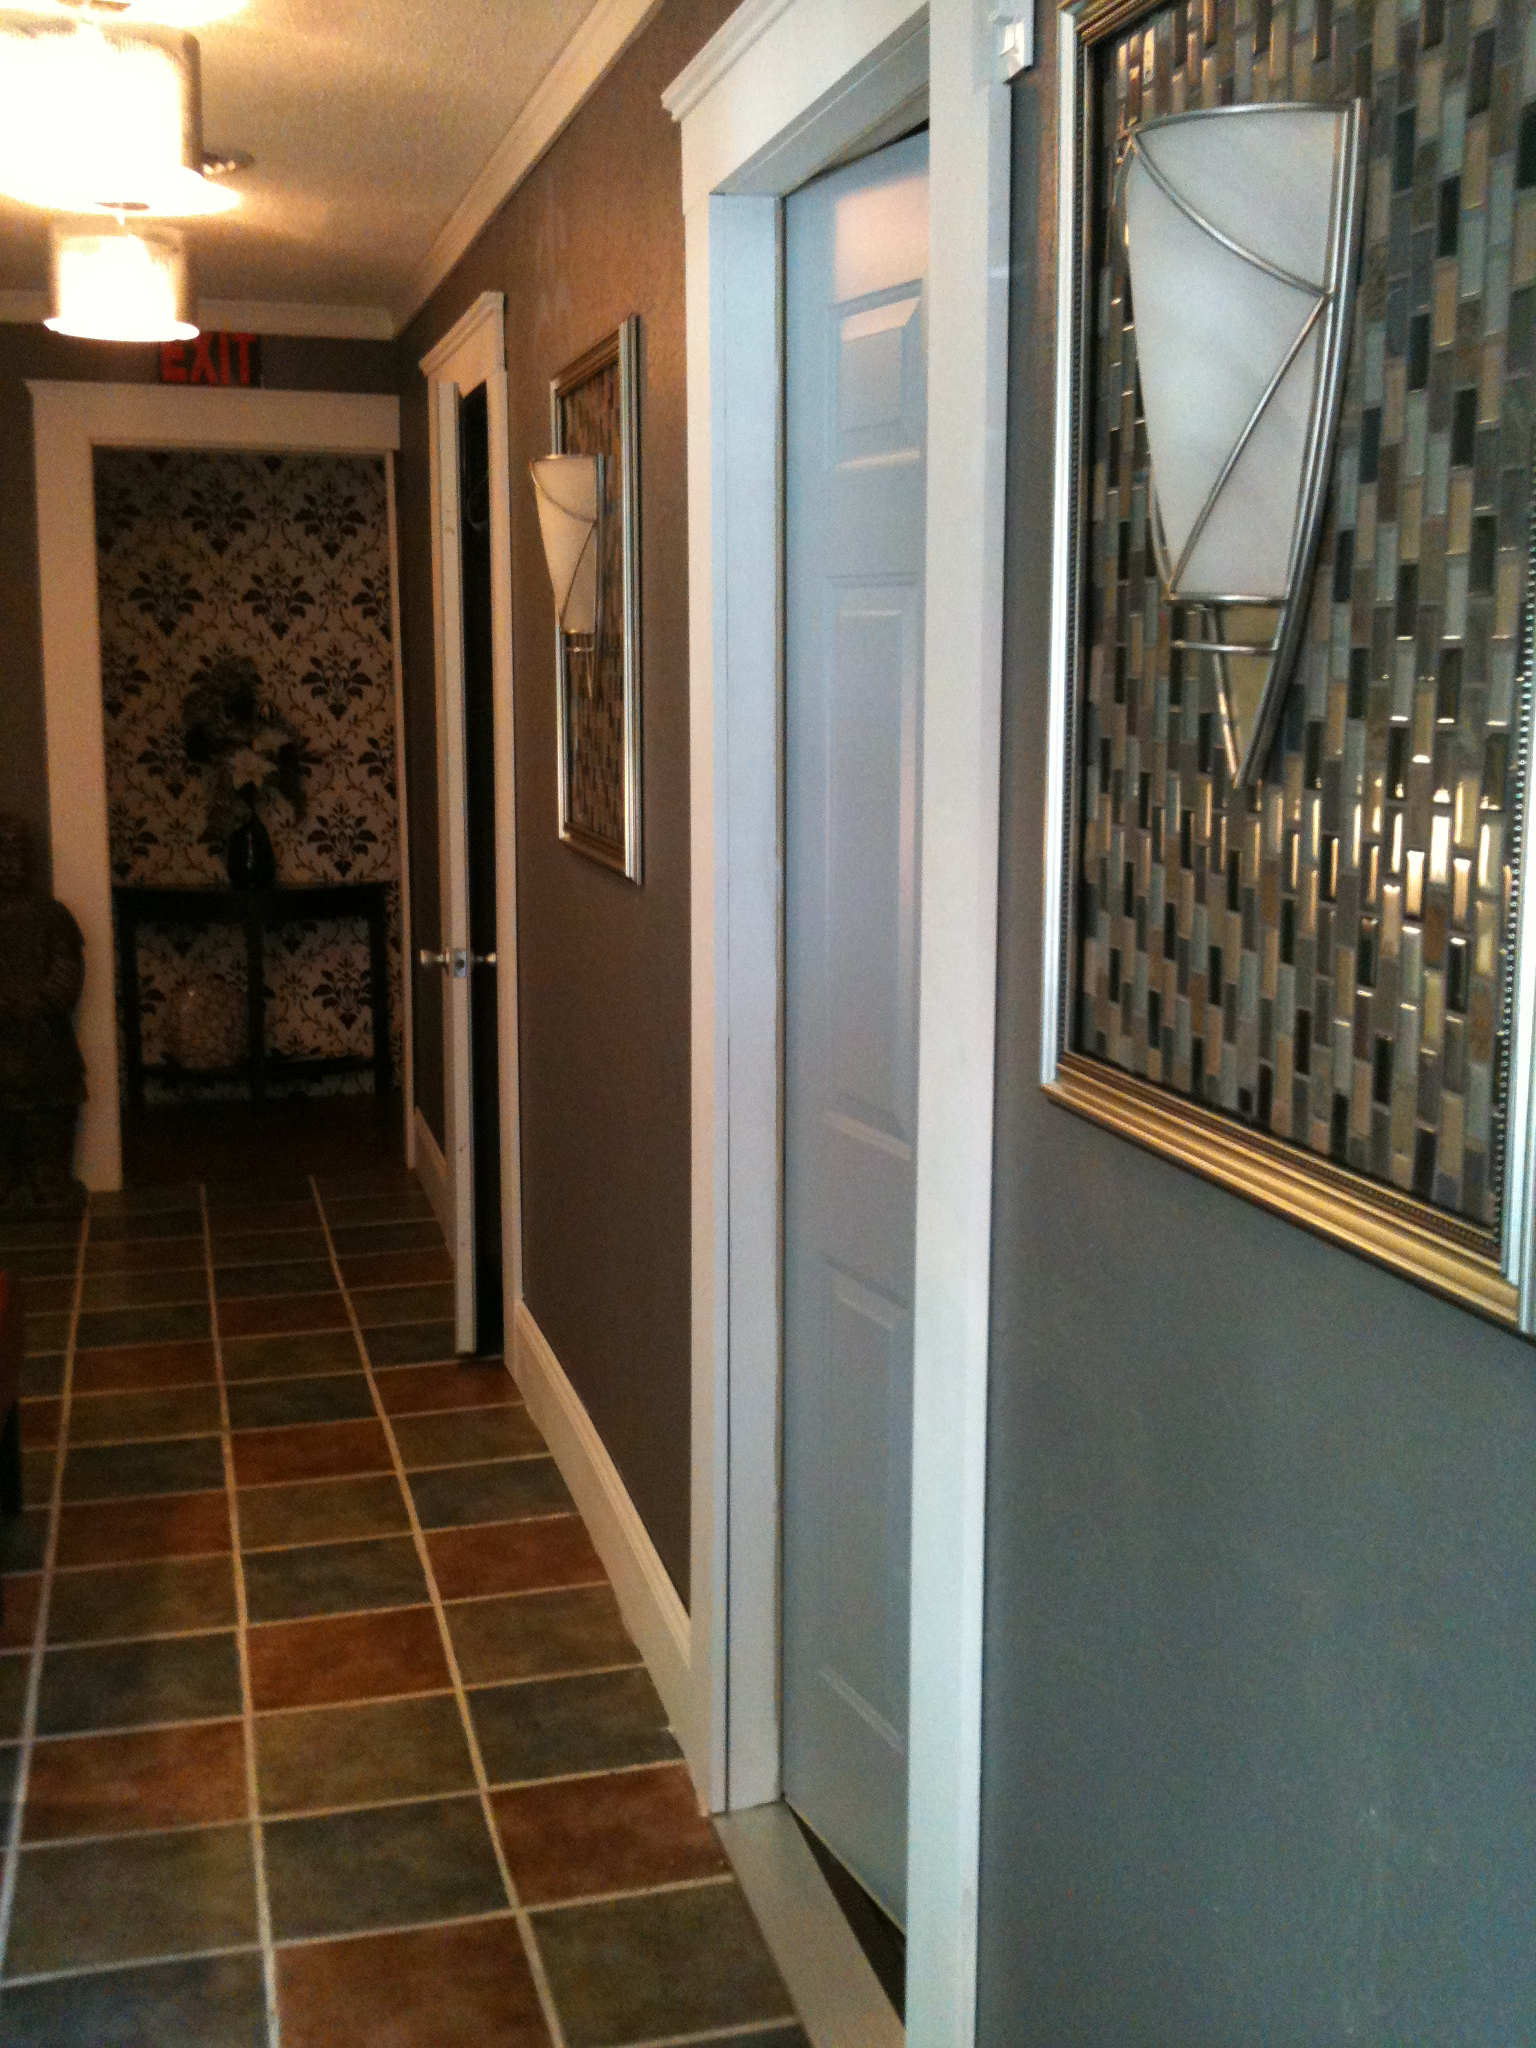 Hallway at Corepoint Spa